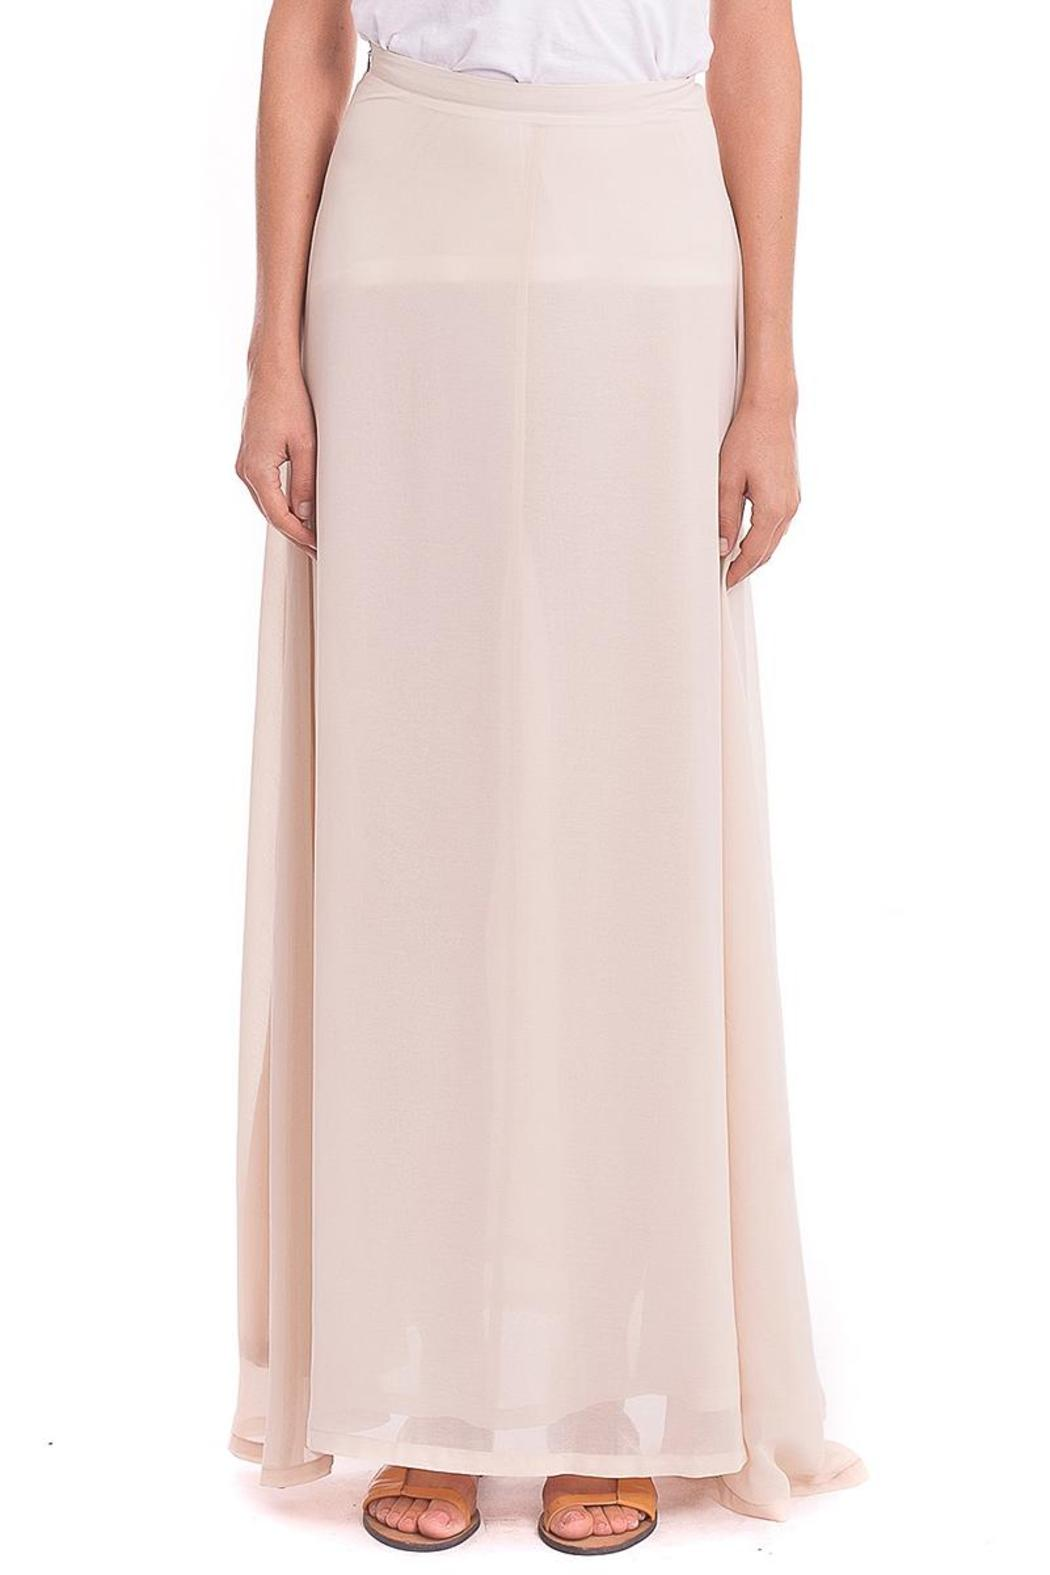 Zero Degrees Celsius Chiffon Maxi Skirt From Wicker Park By Mulberry